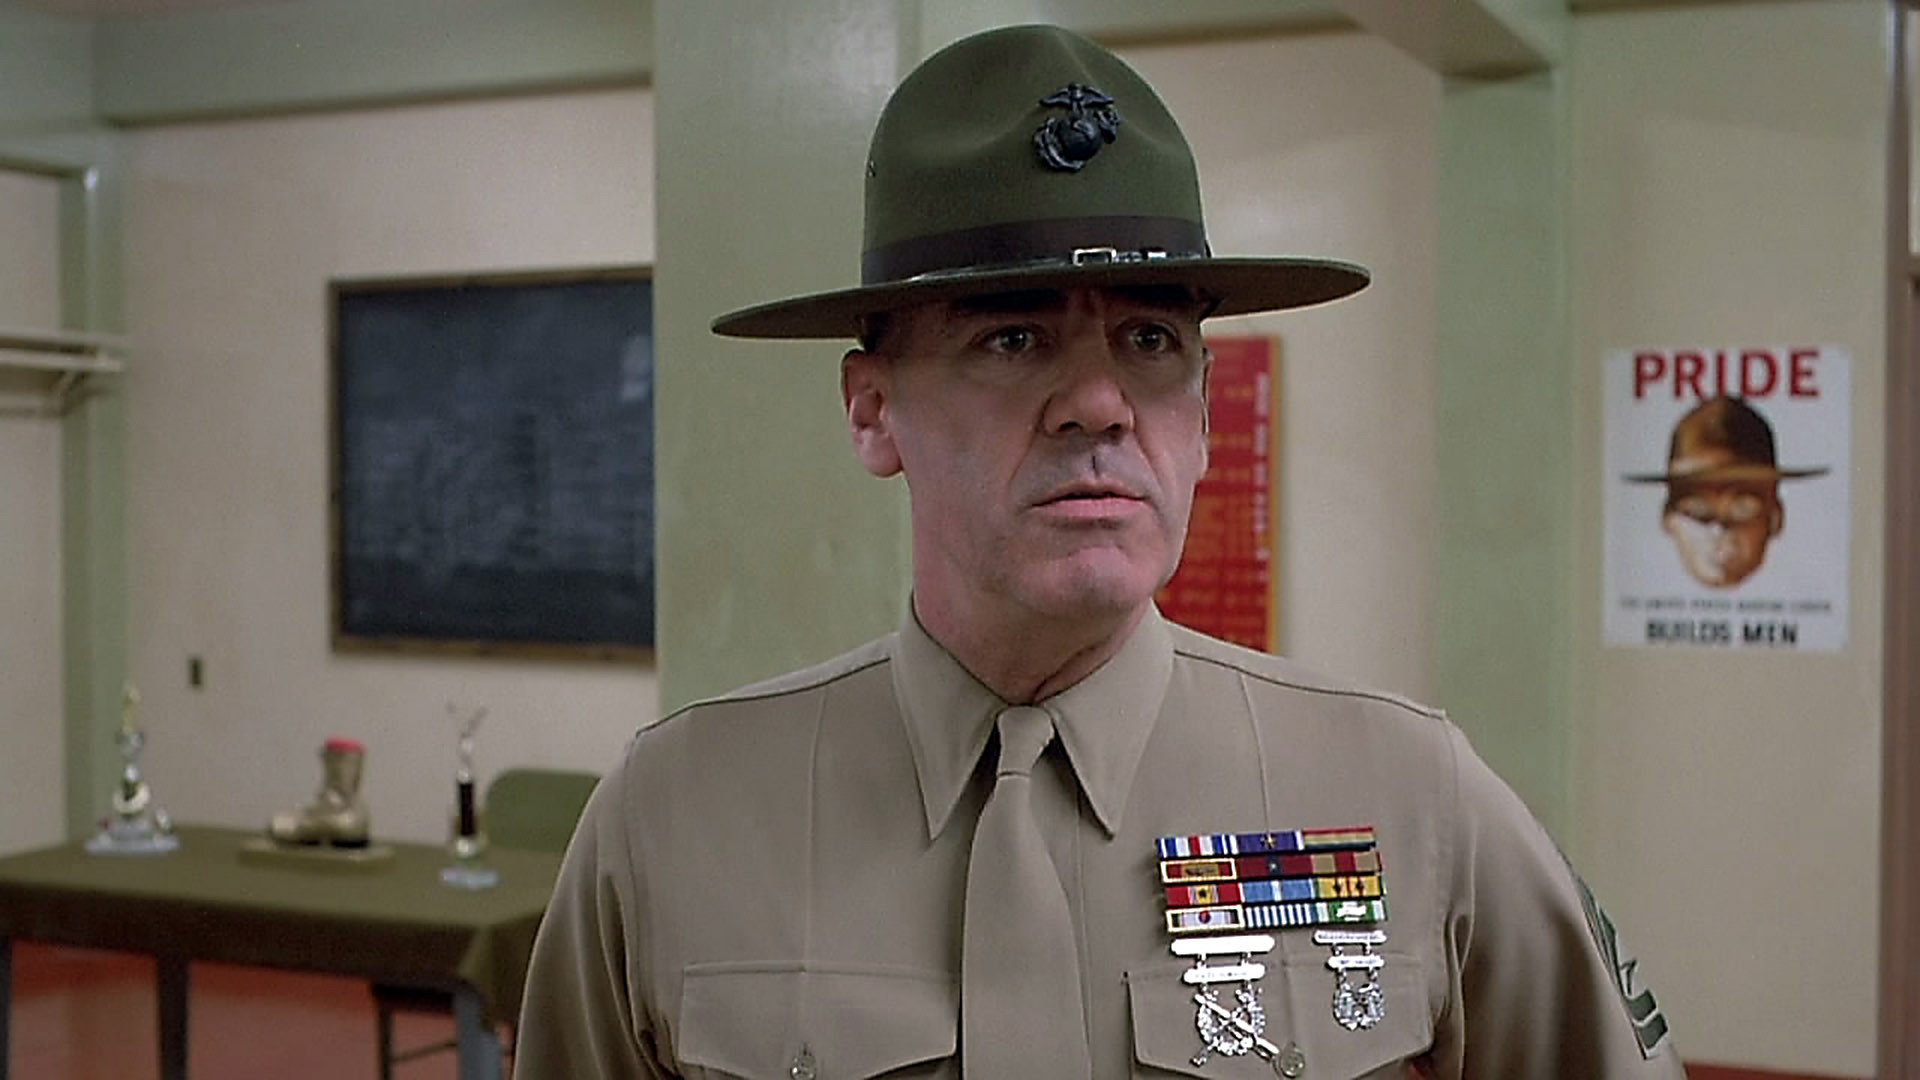 [R.I.P.] Legendary Character Actor R. Lee Ermey Has Died ...